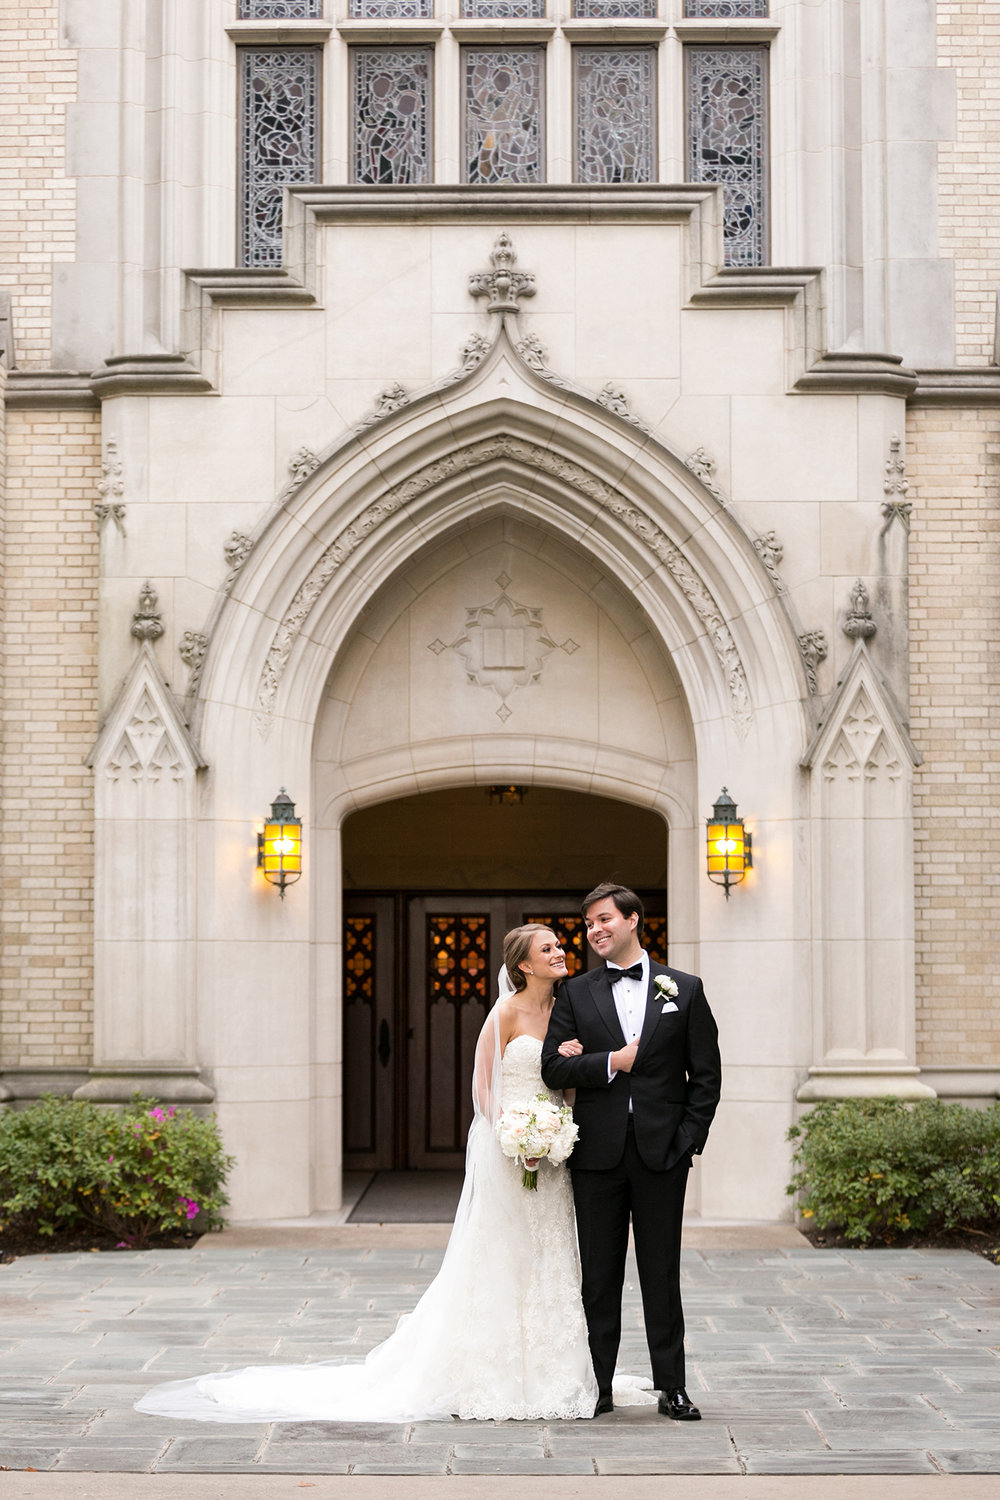 Dallas Wedding Planner - Allday Events - Classic Wedding at Dallas Scottish Rite - 291.jpg